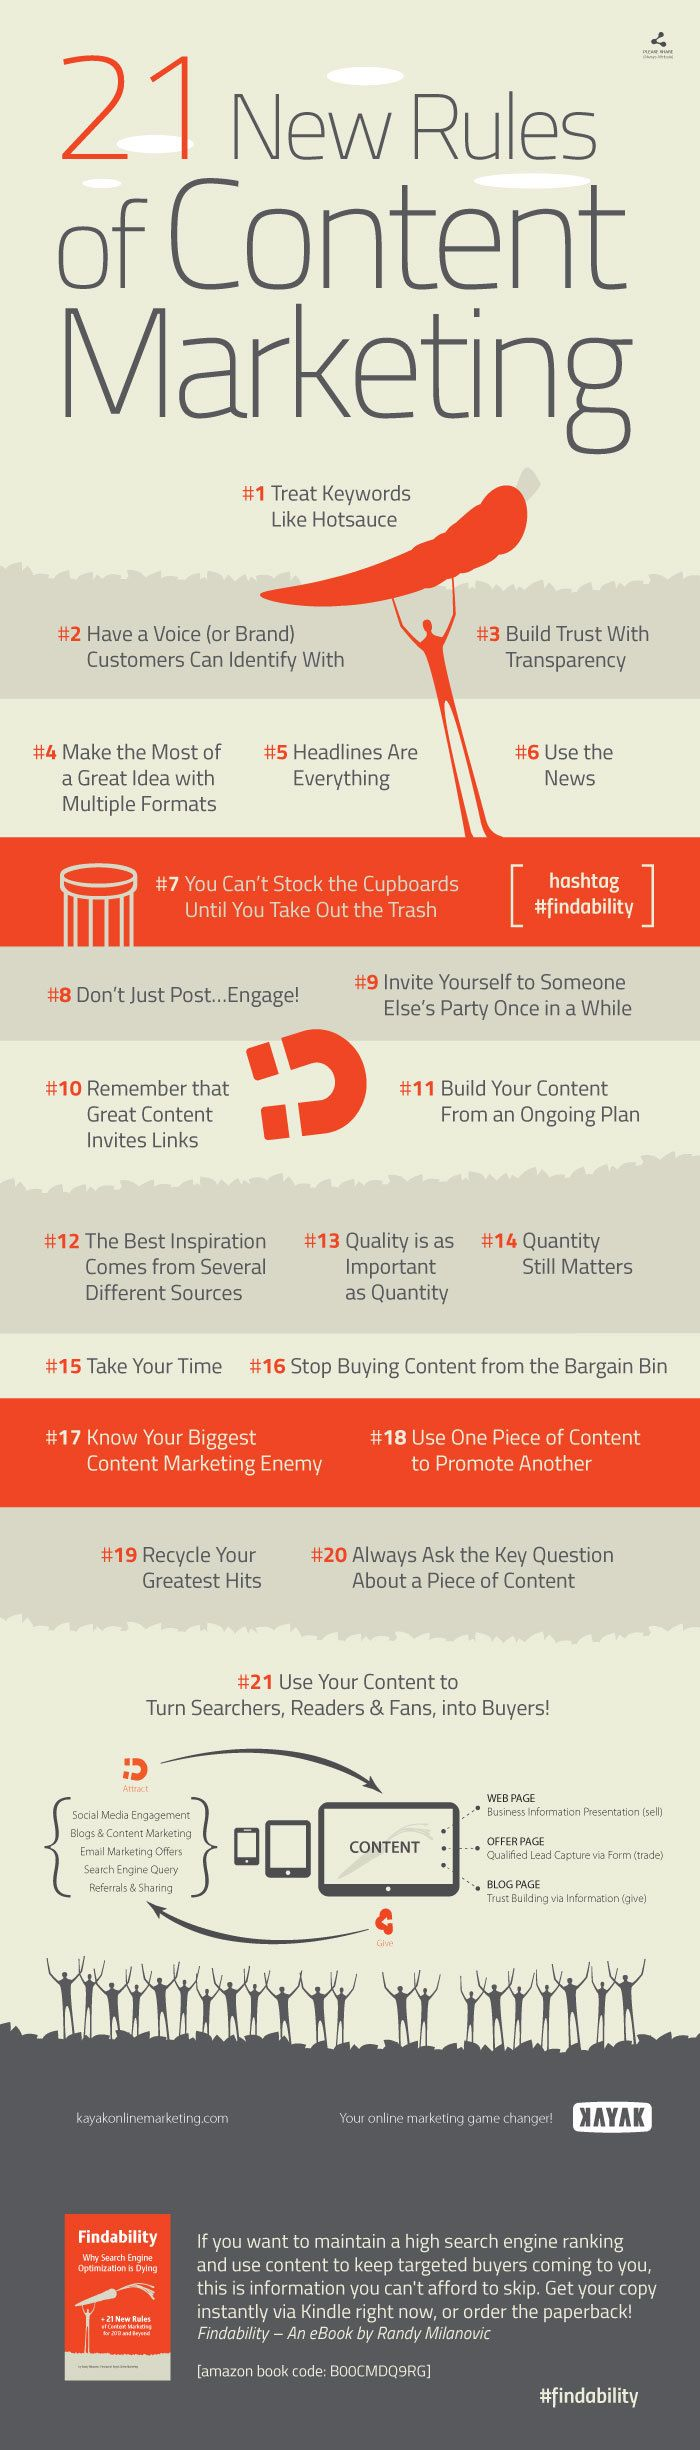 The 21 New Rules of #Content #Marketing [INFOGRAPHIC]